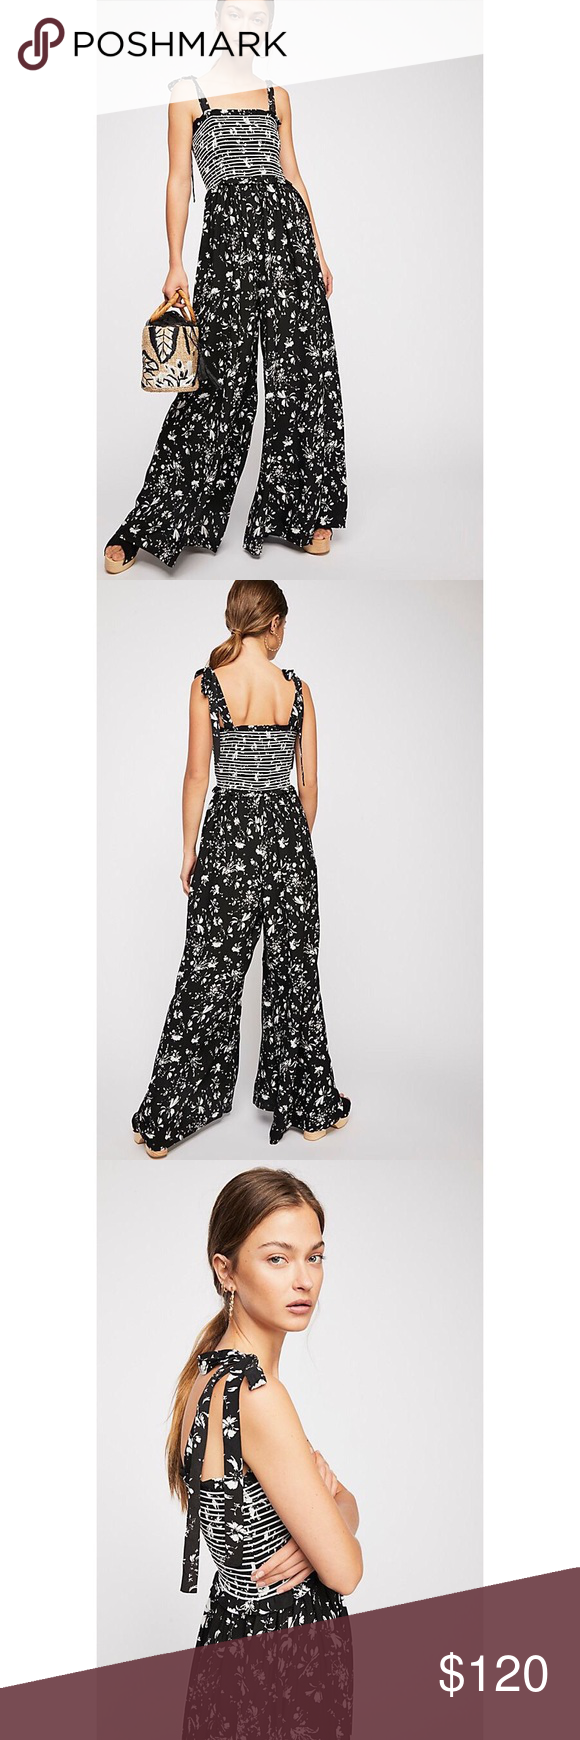 68fcd9210c0b FREE PEOPLE COLOR MY WORLD WIDE LEG JUMPSUIT New with tag. 🚫 Trades Printed  jumpsuit